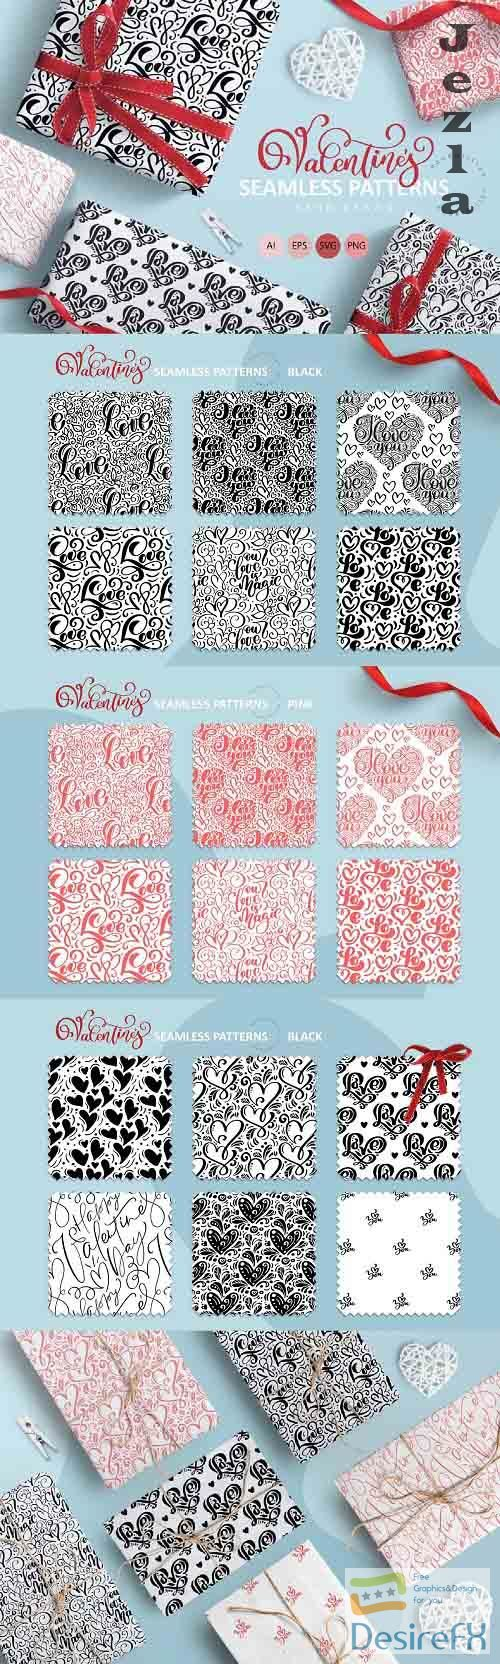 Valentine's Hand Drawn Seamless Patterns - 5805925